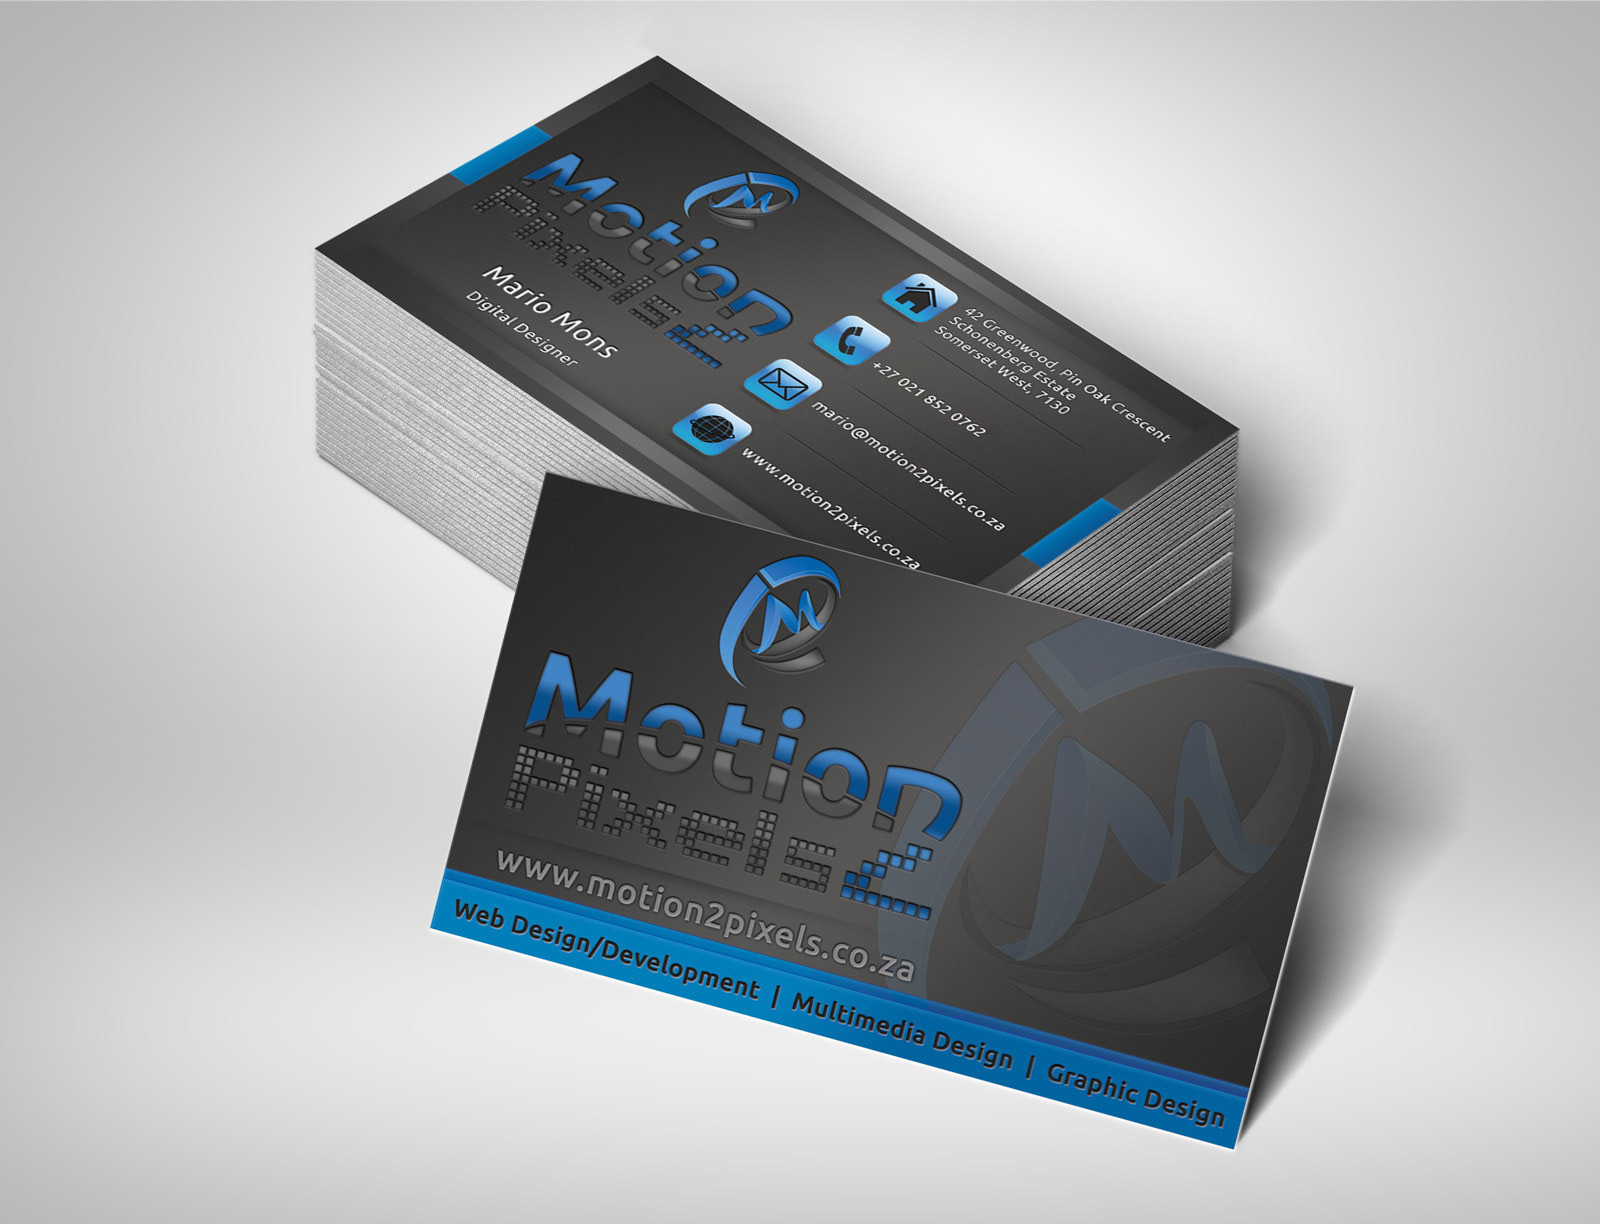 Various Corporate Business Card Designs Completed During The Period 2012 2015